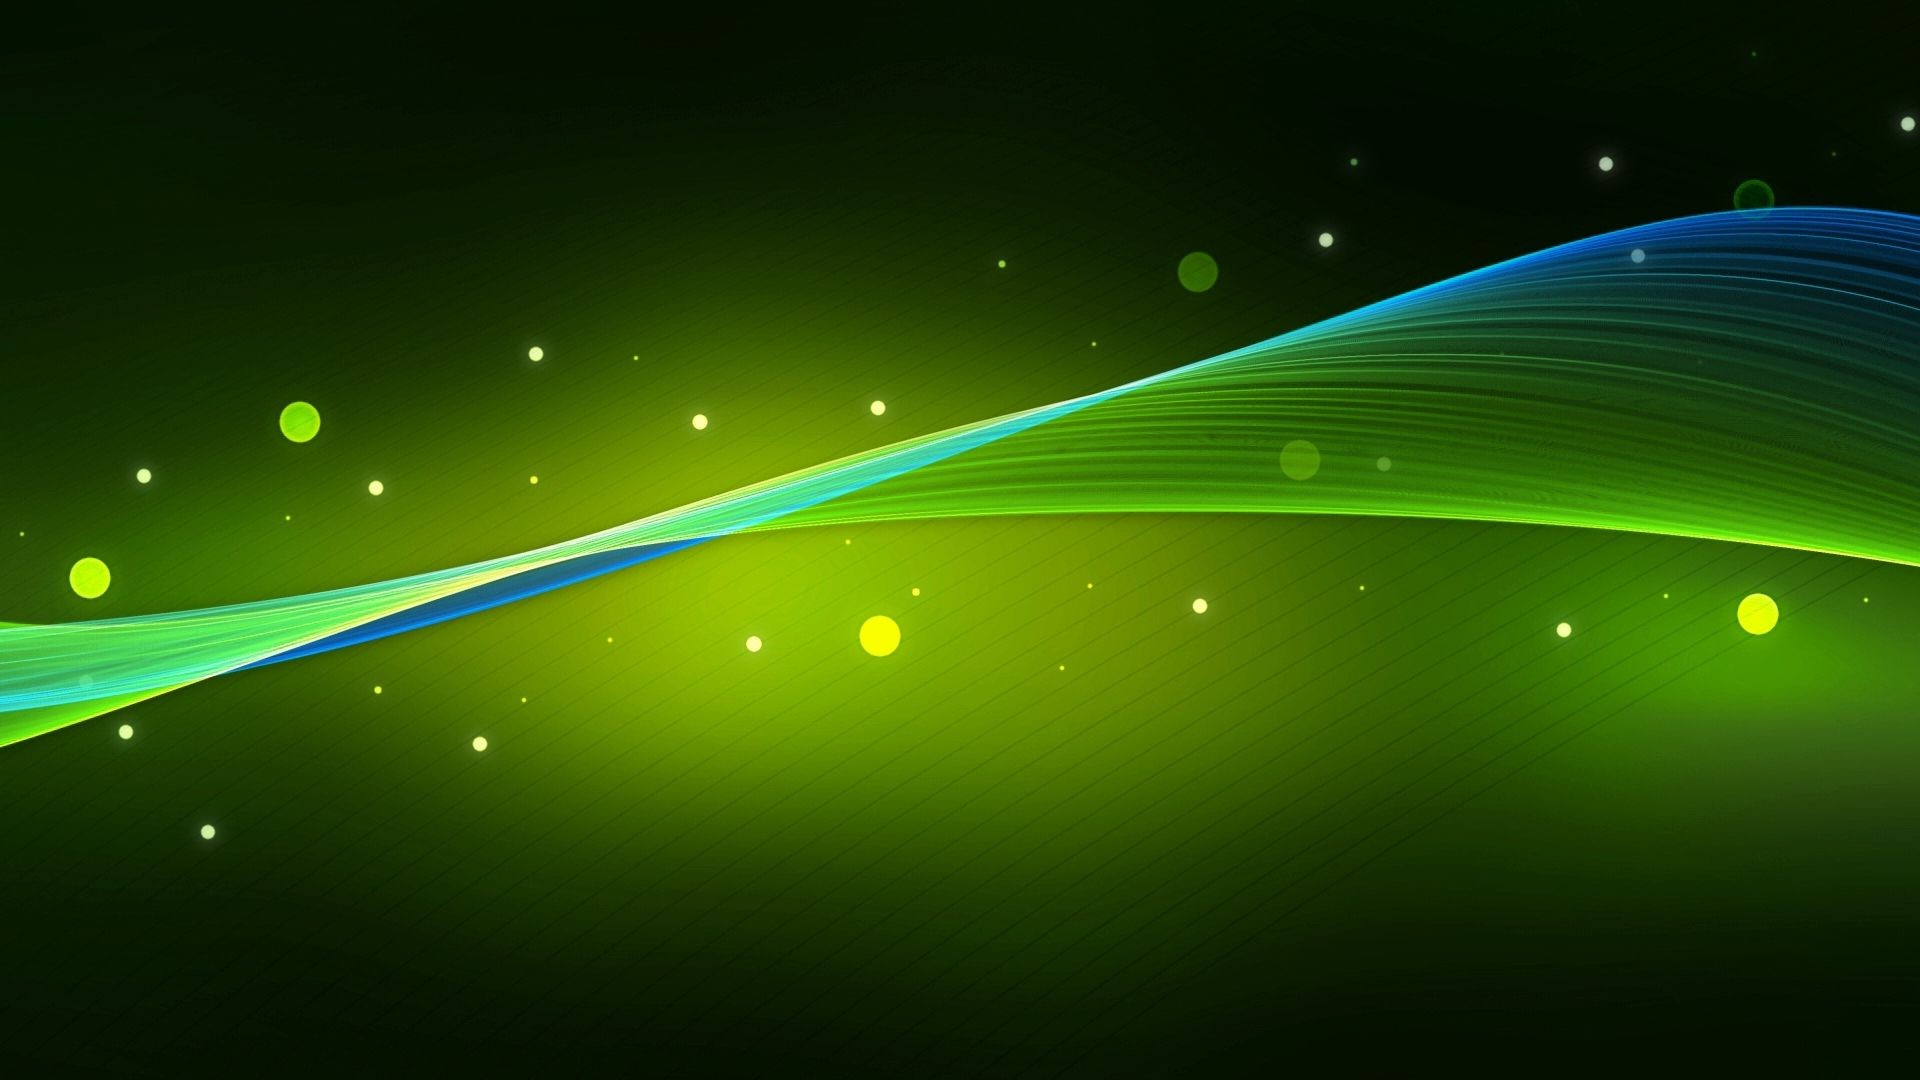 Hd wallpaper green - Green Wallpaper 12